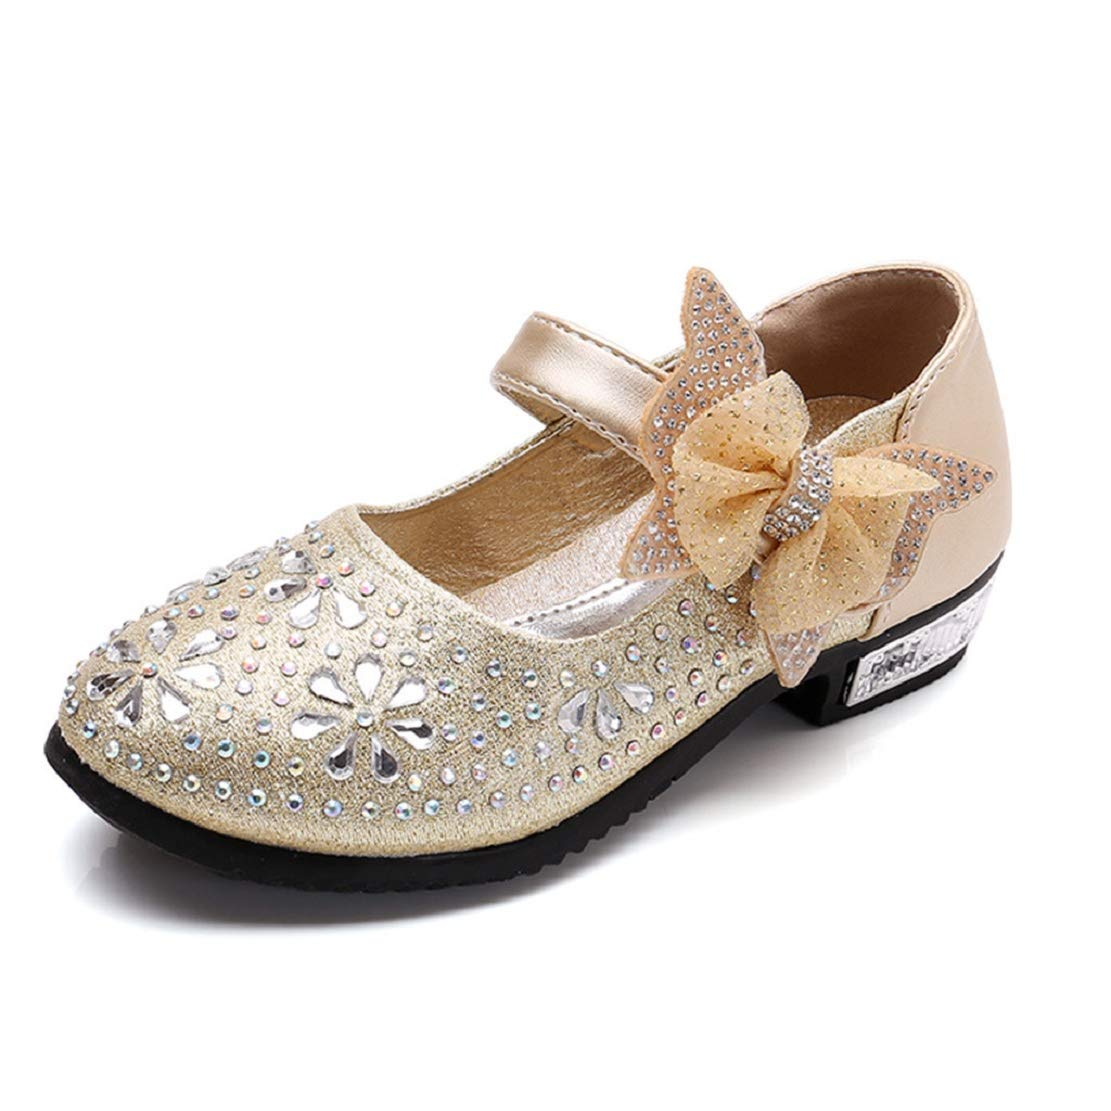 Toddler Kids Girls Princess Mary Jane Heeled Shoes Sparkle Party Dress Shoes Low Heel with Butterfly by Lowprofile